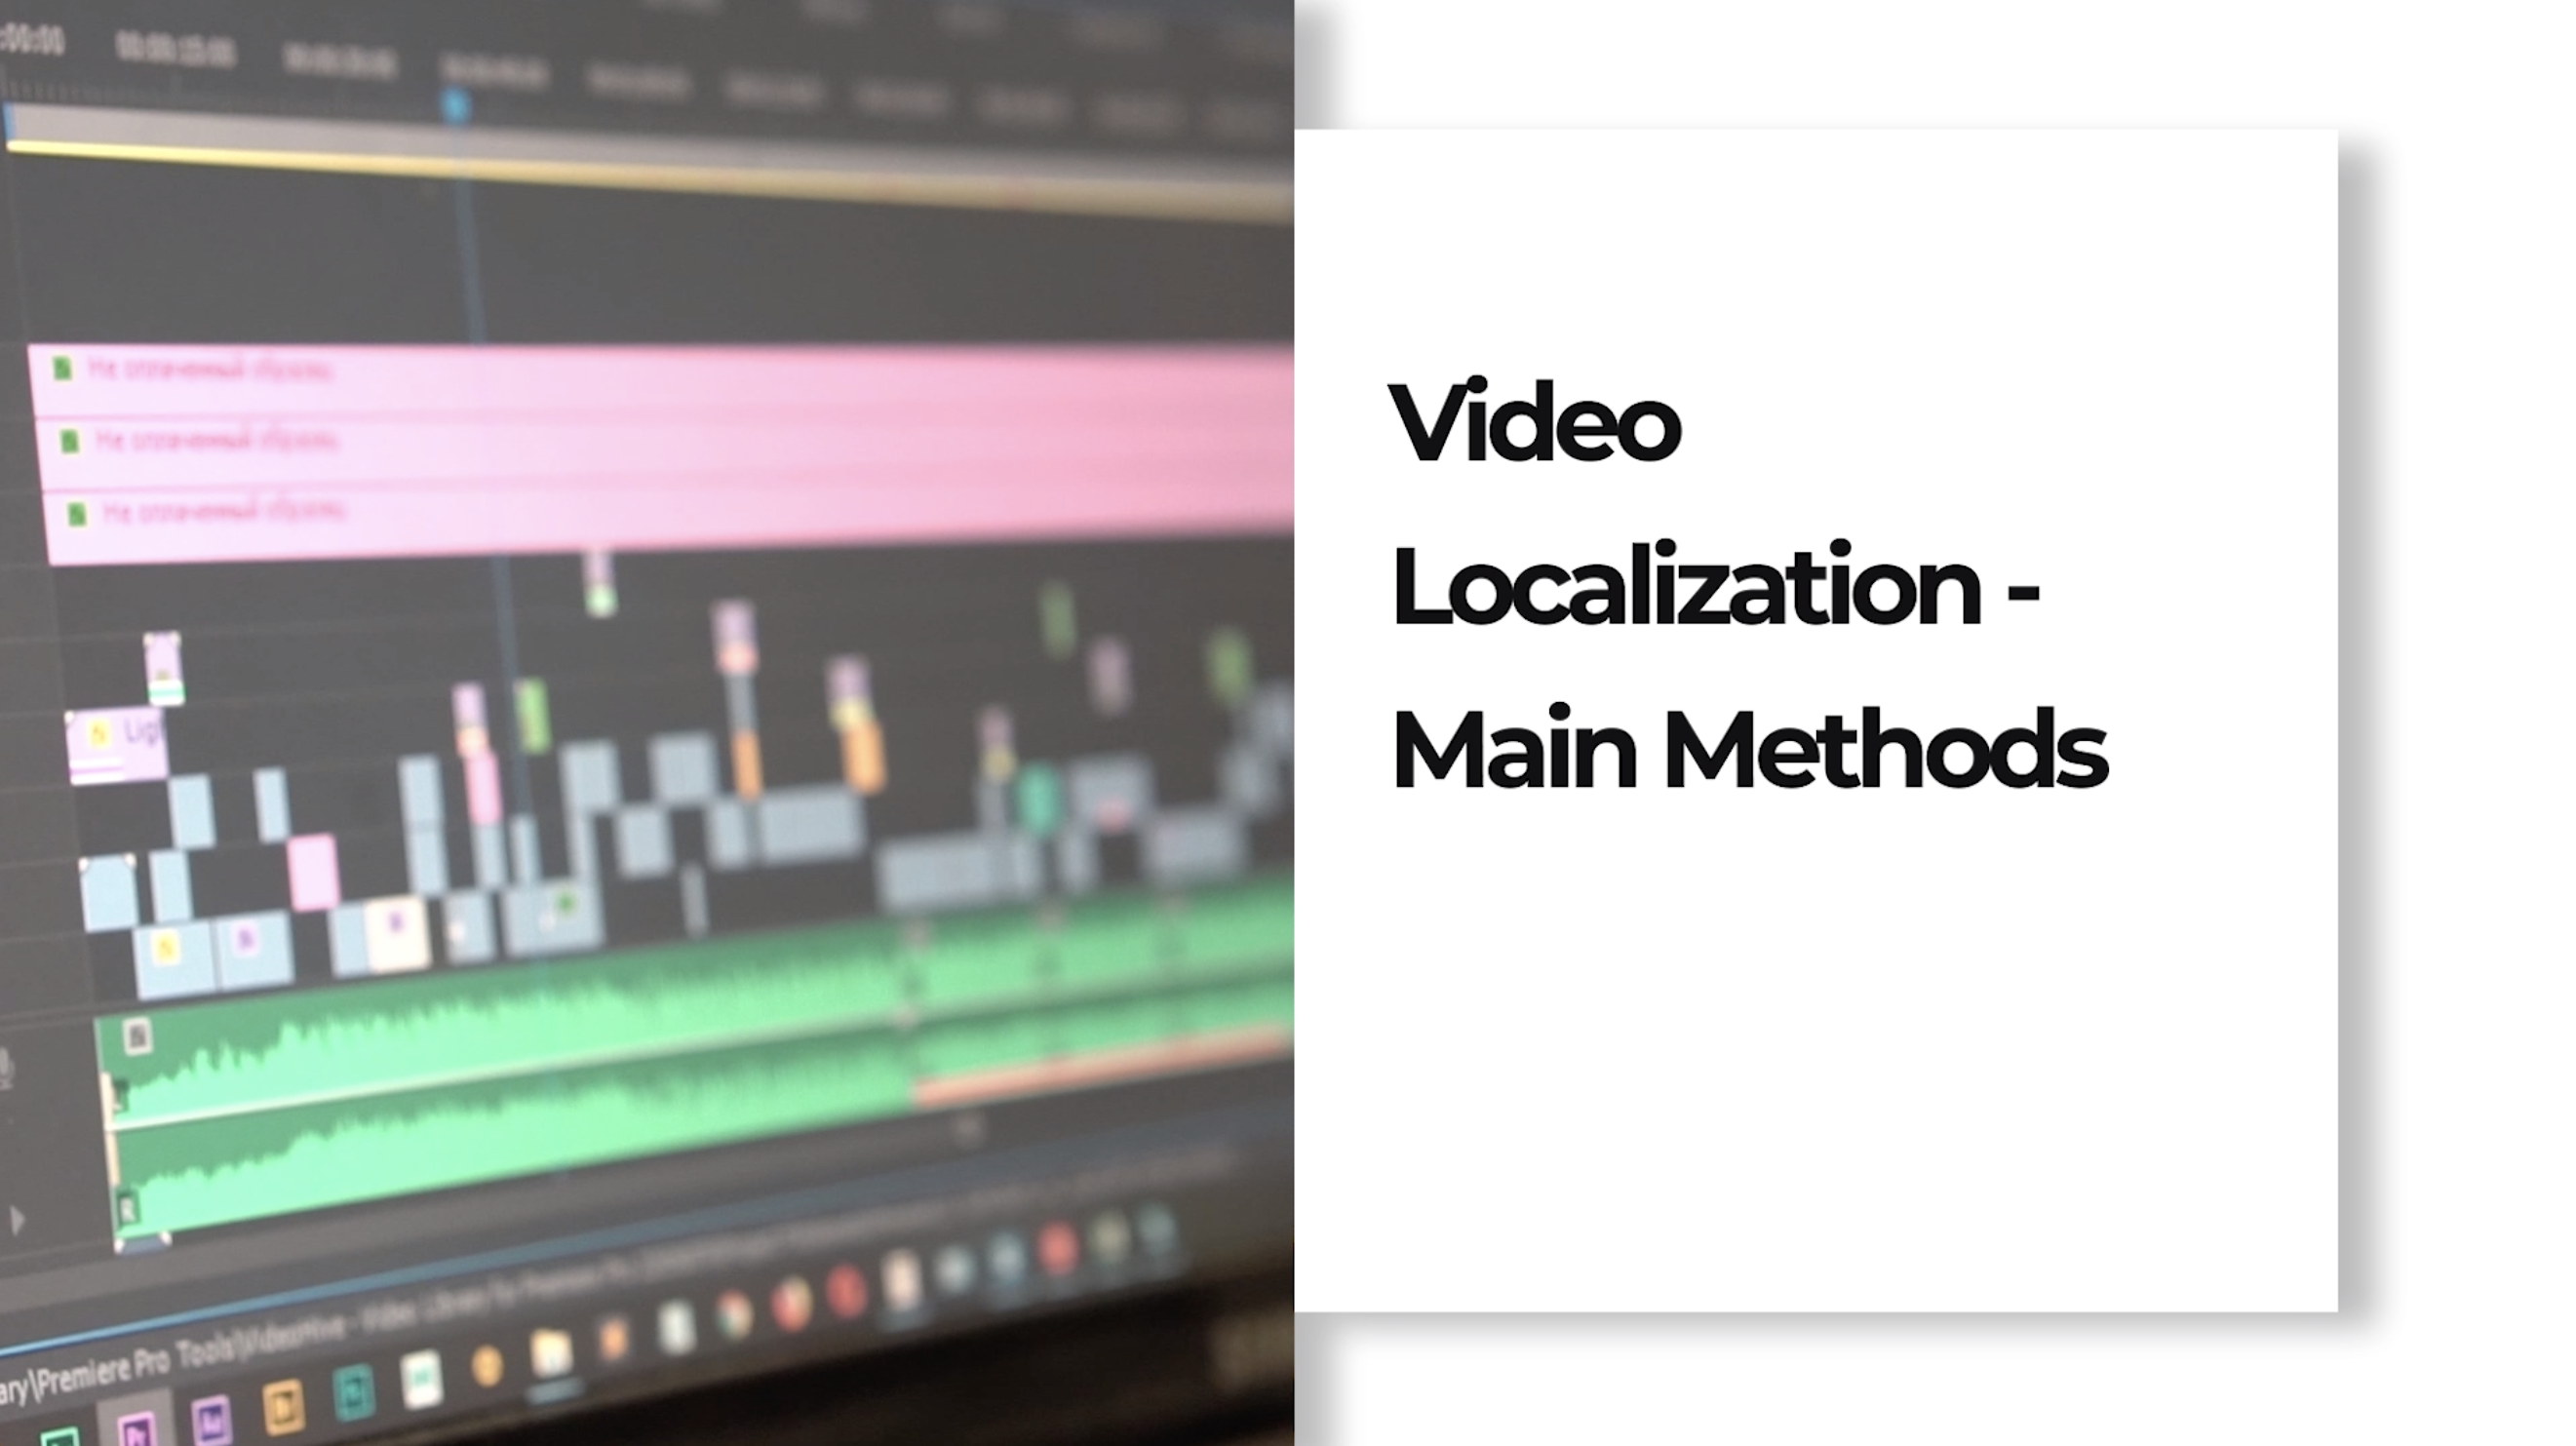 Video Localization: The importance of On-Screen Text